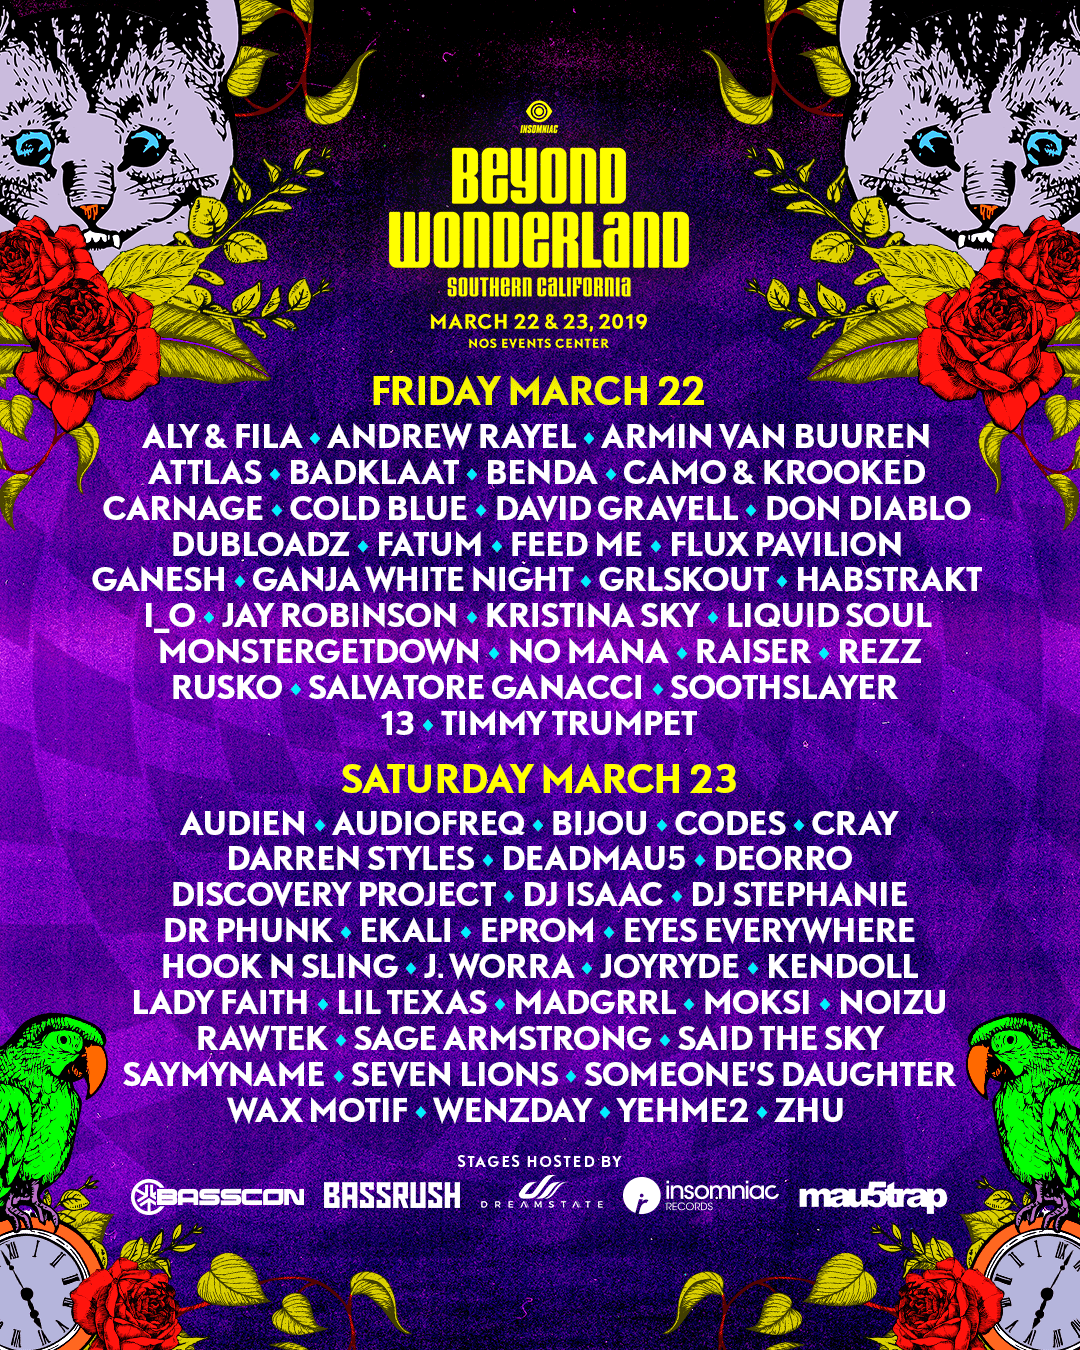 Beyond Wonderland 2019 lineup broken out by day